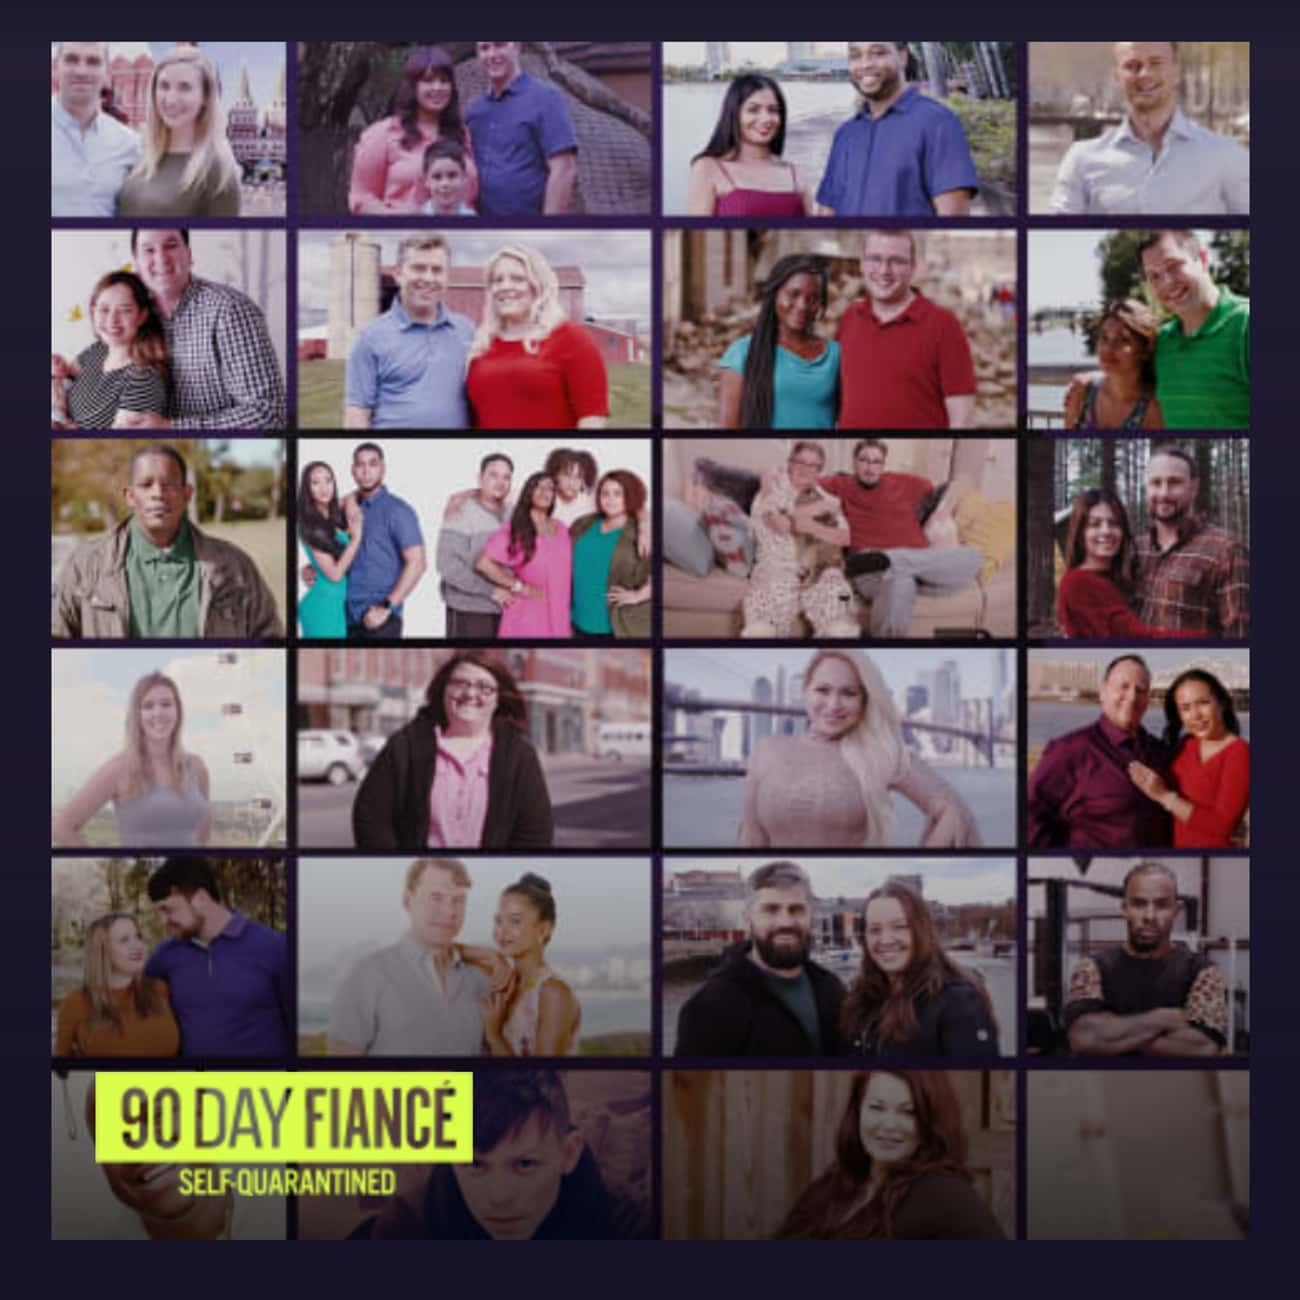 90 Day Fiancé: Self-Quarantine is listed (or ranked) 3 on the list What To Watch If You Love '90 Day Fiancé'